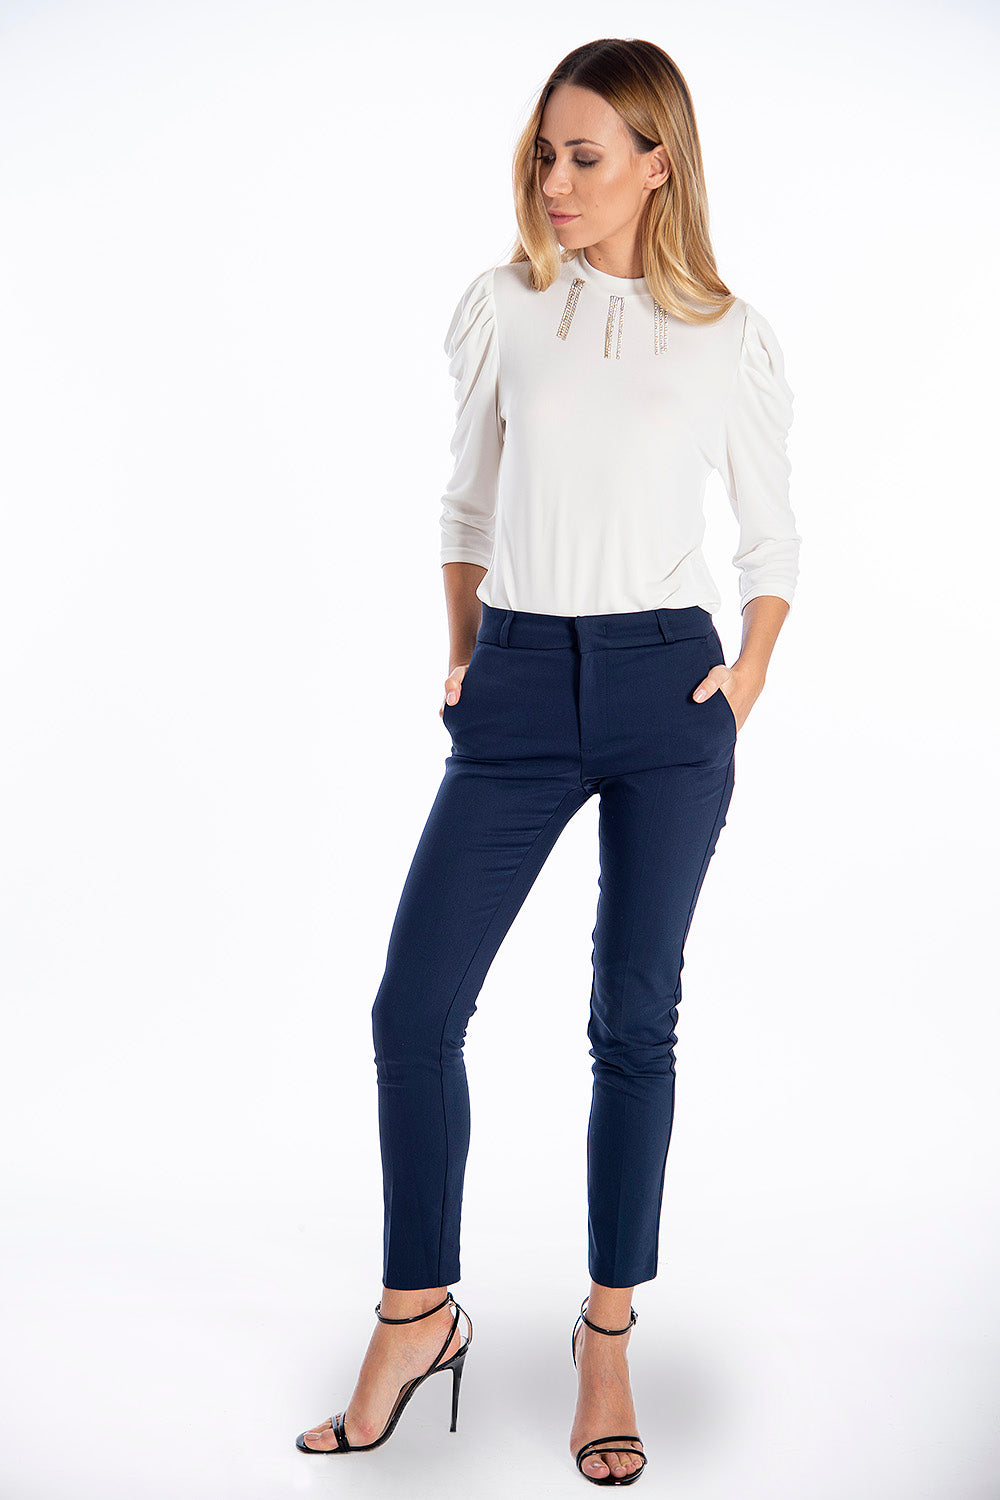 NúNu straight line trousers with concealed zip